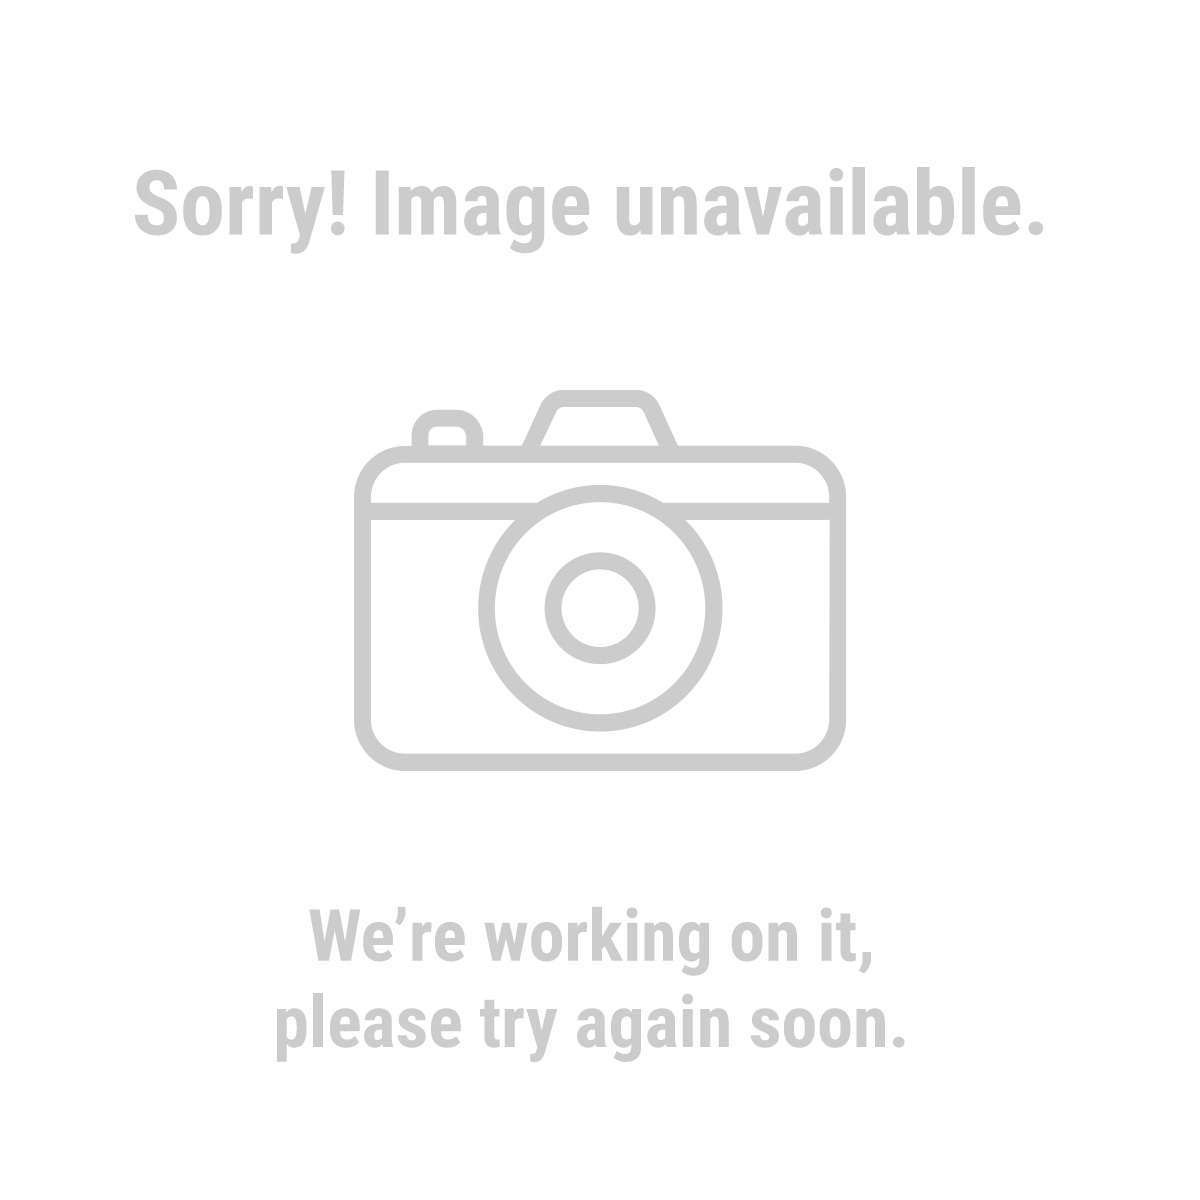 Haul-Master® 93341 Trailer Spare Tire Carrier